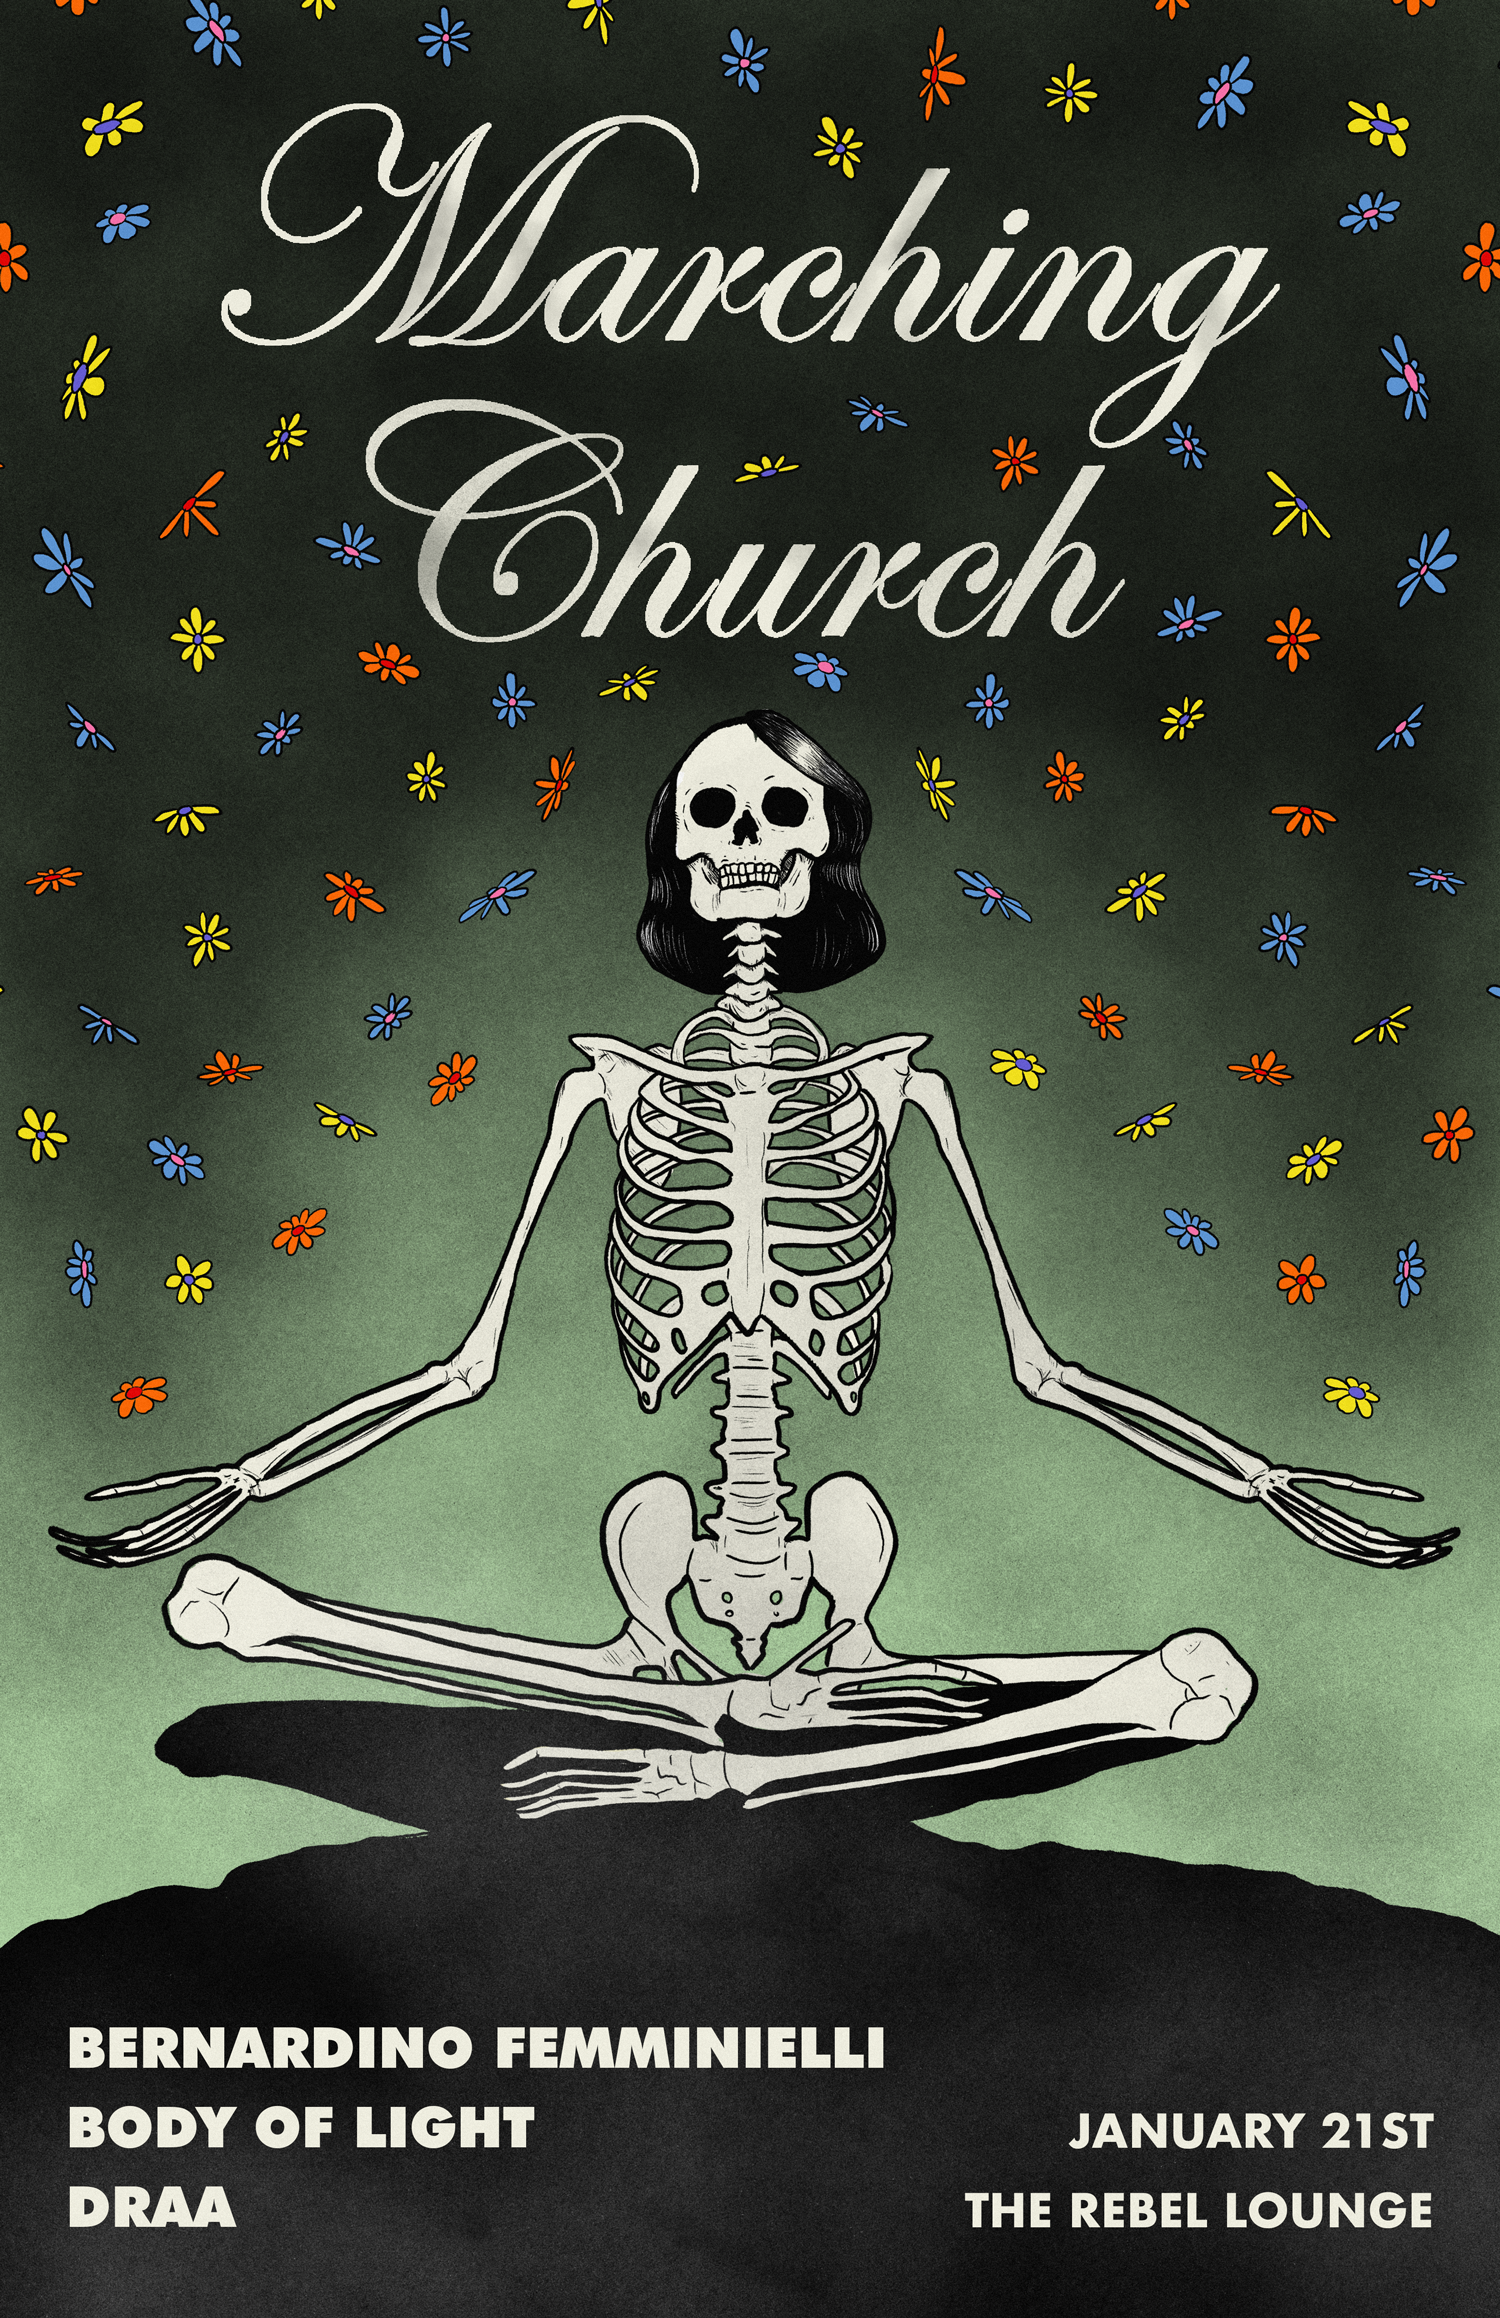 AnthonyEslickMarchingChurch.png